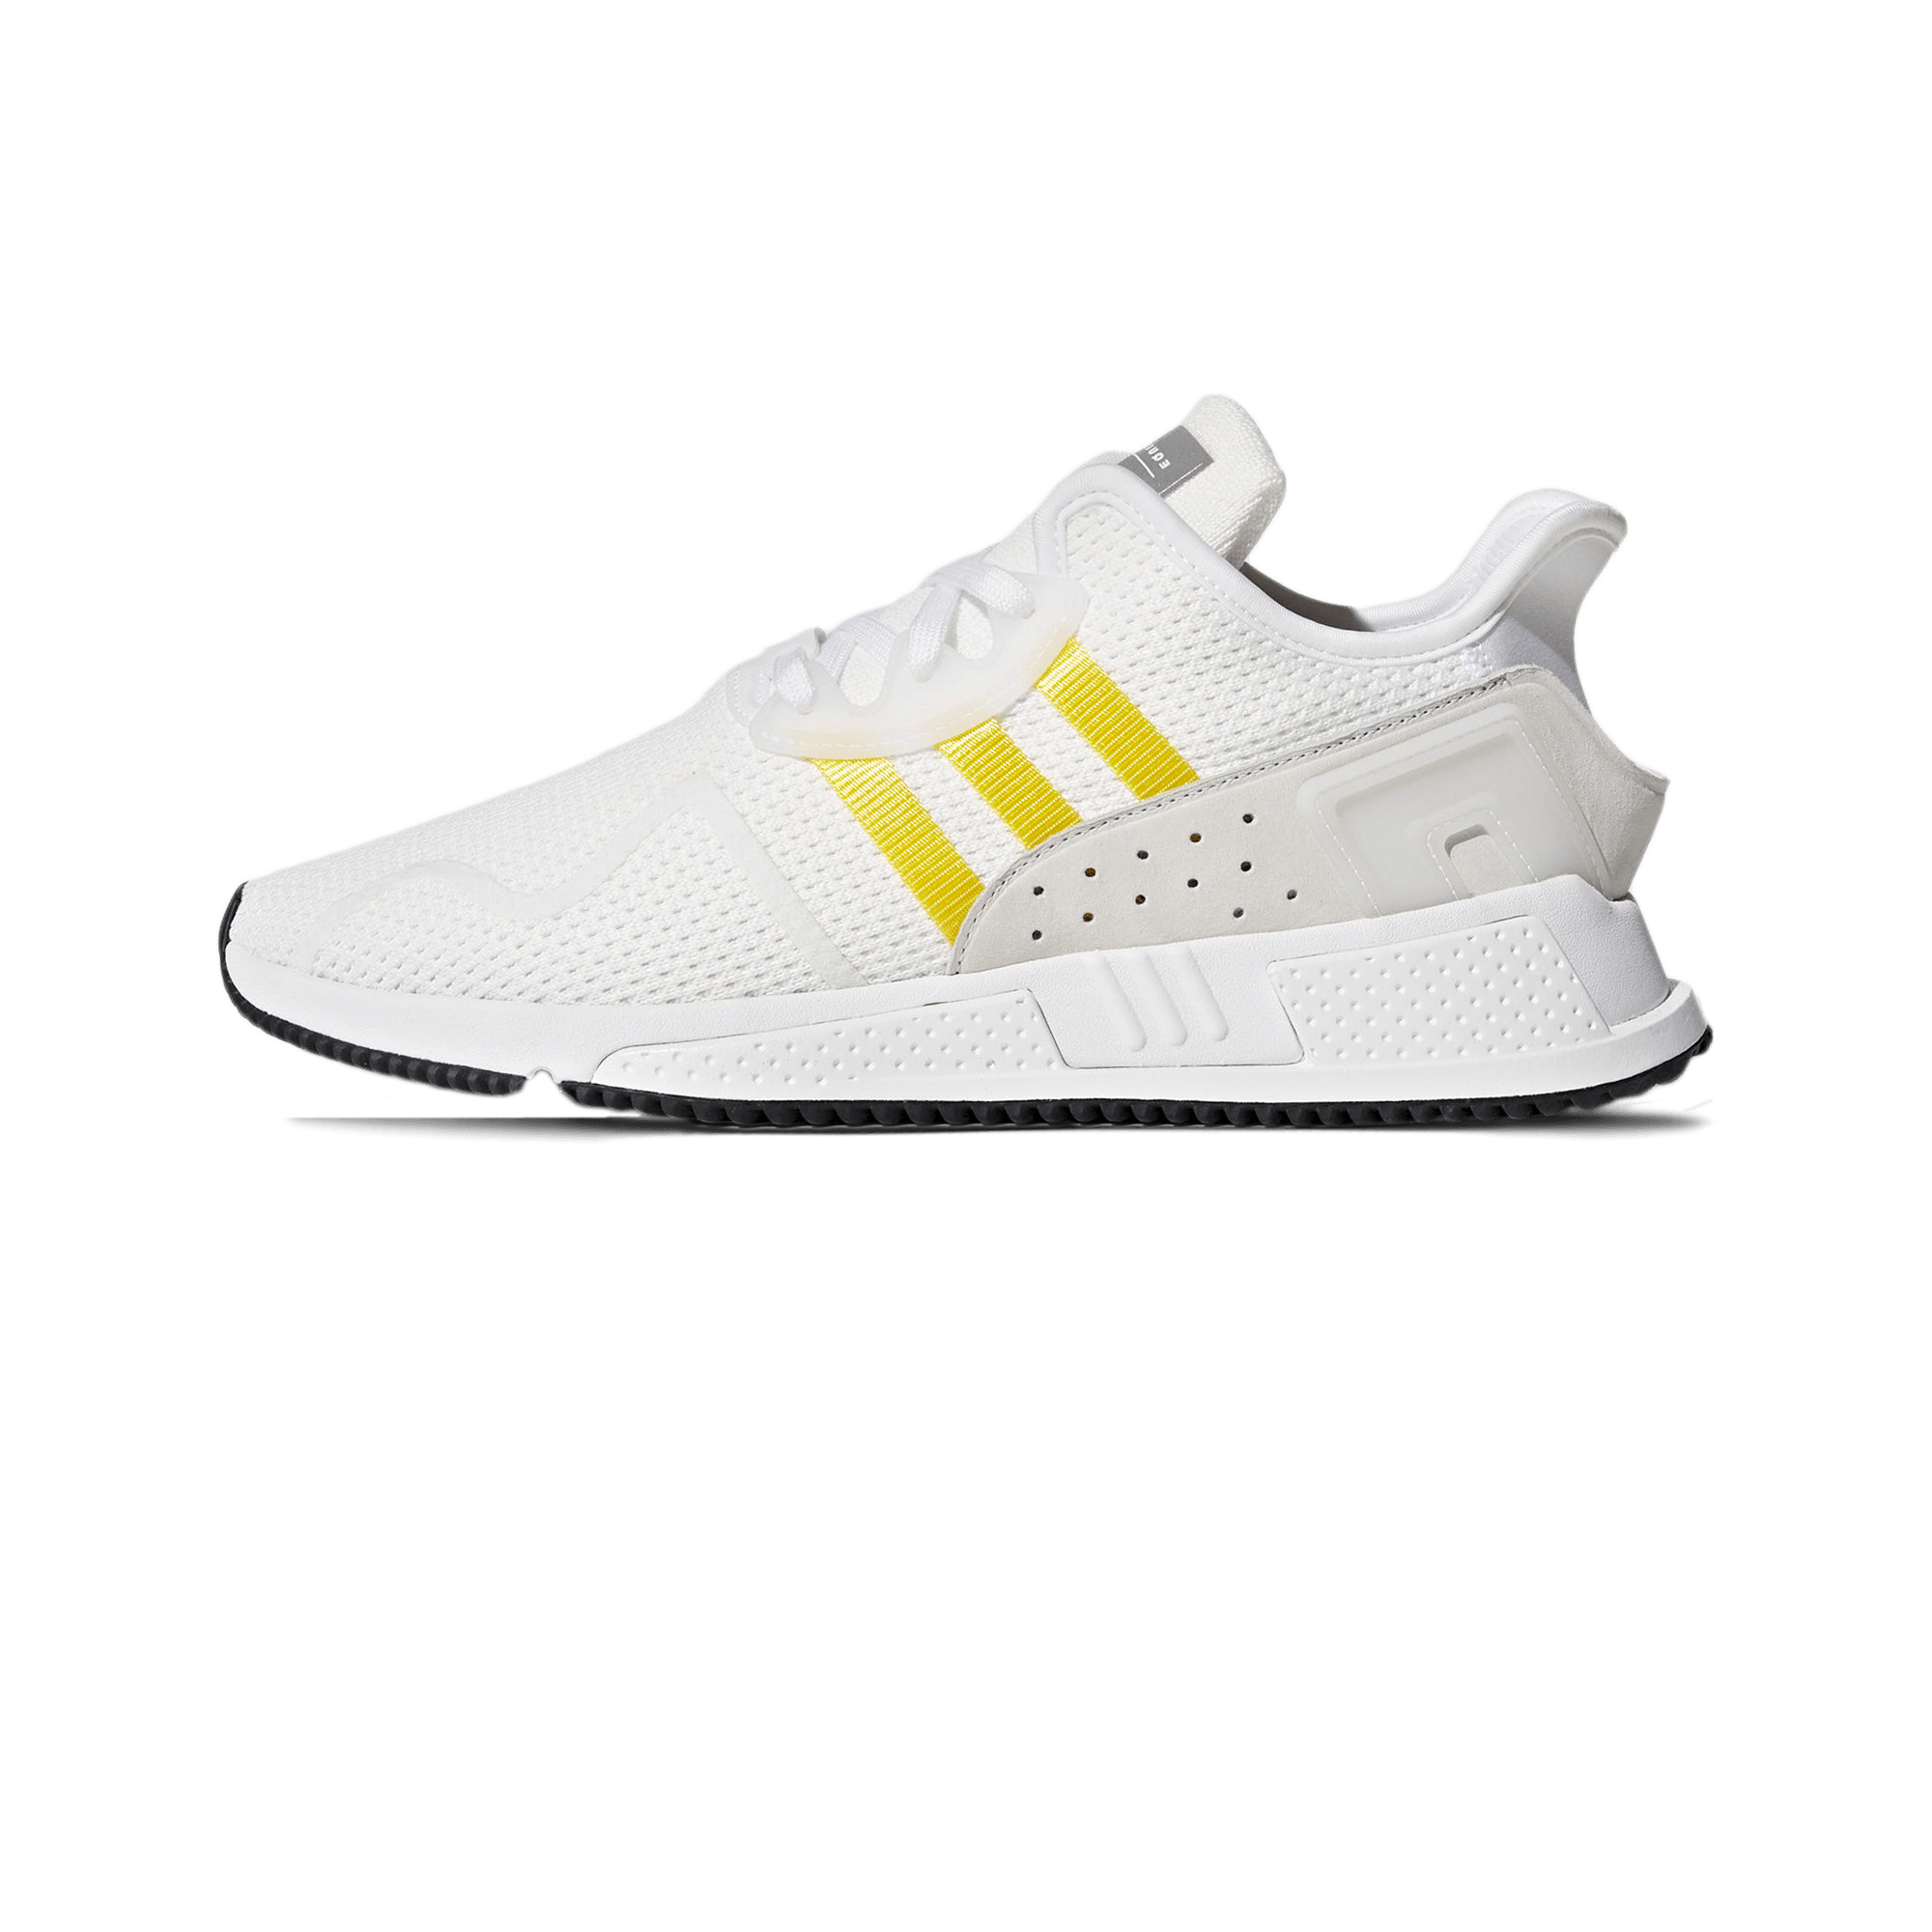 292a465c6c2b ... australia home footwear men adidas eqt cushion adv. eqt cushion adv  white yellow grey 89b73